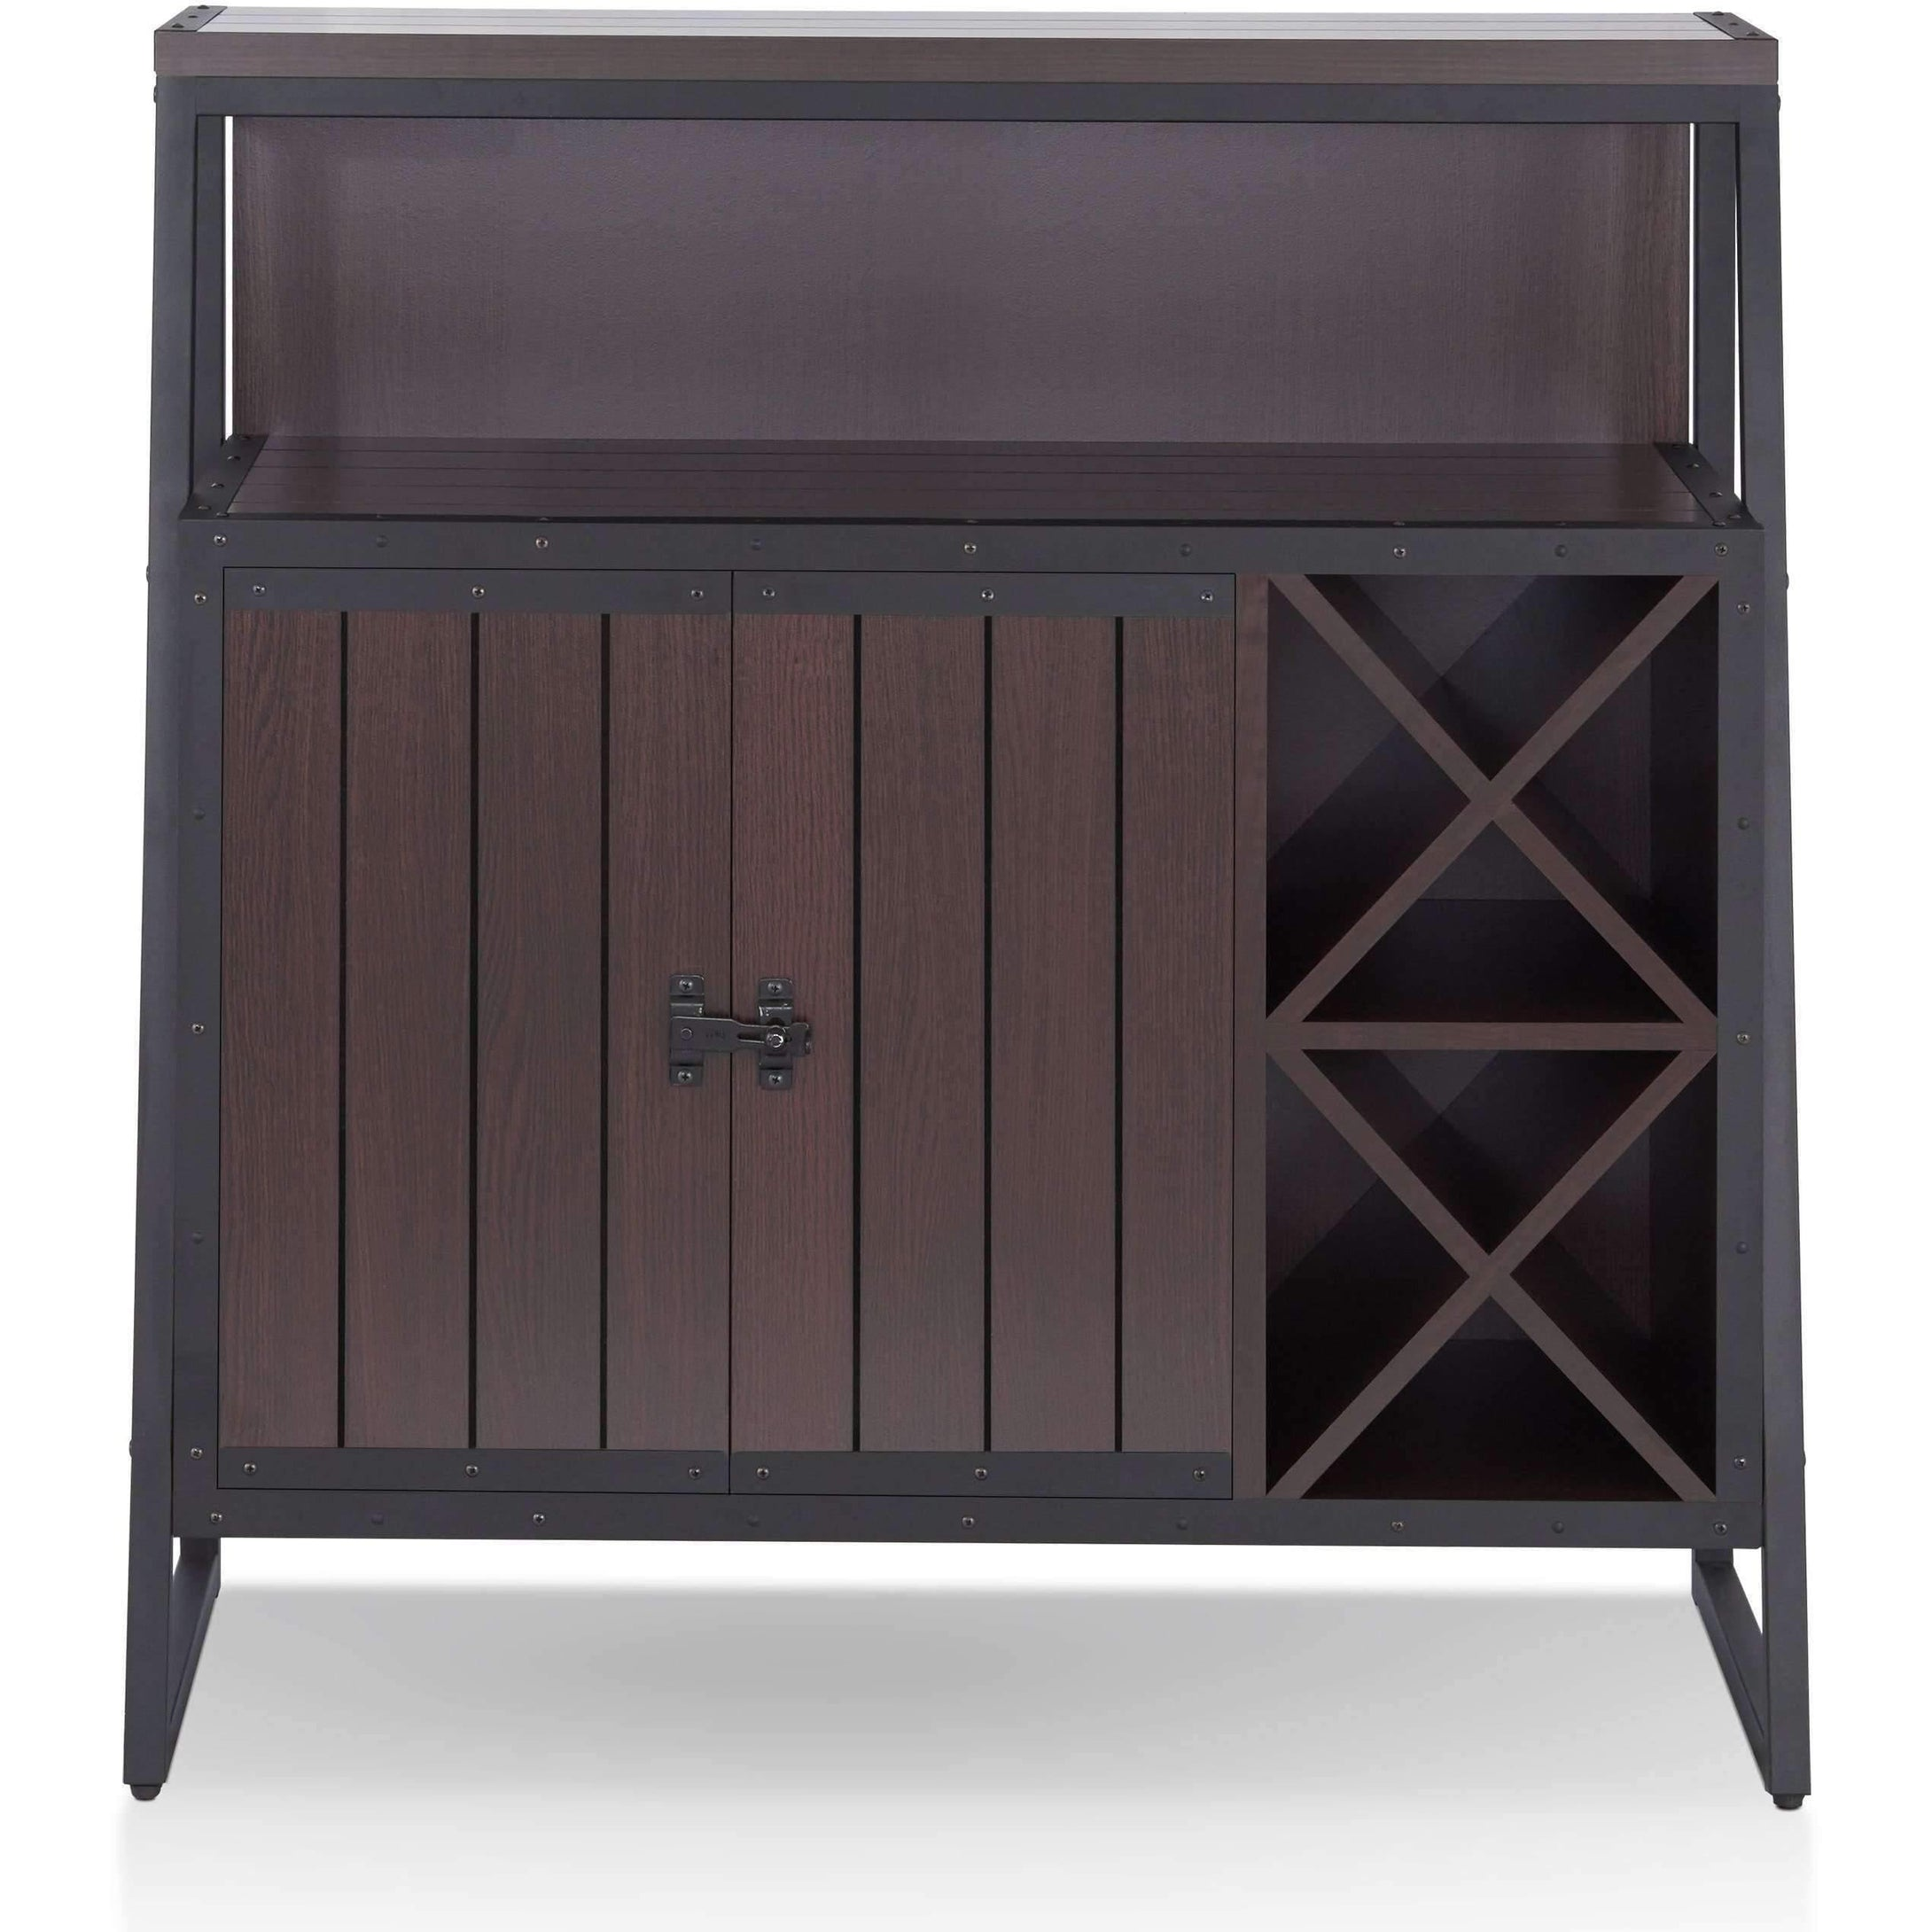 Furniture of America Harry Wine Storage-Furniture of America-Happy Home Bars